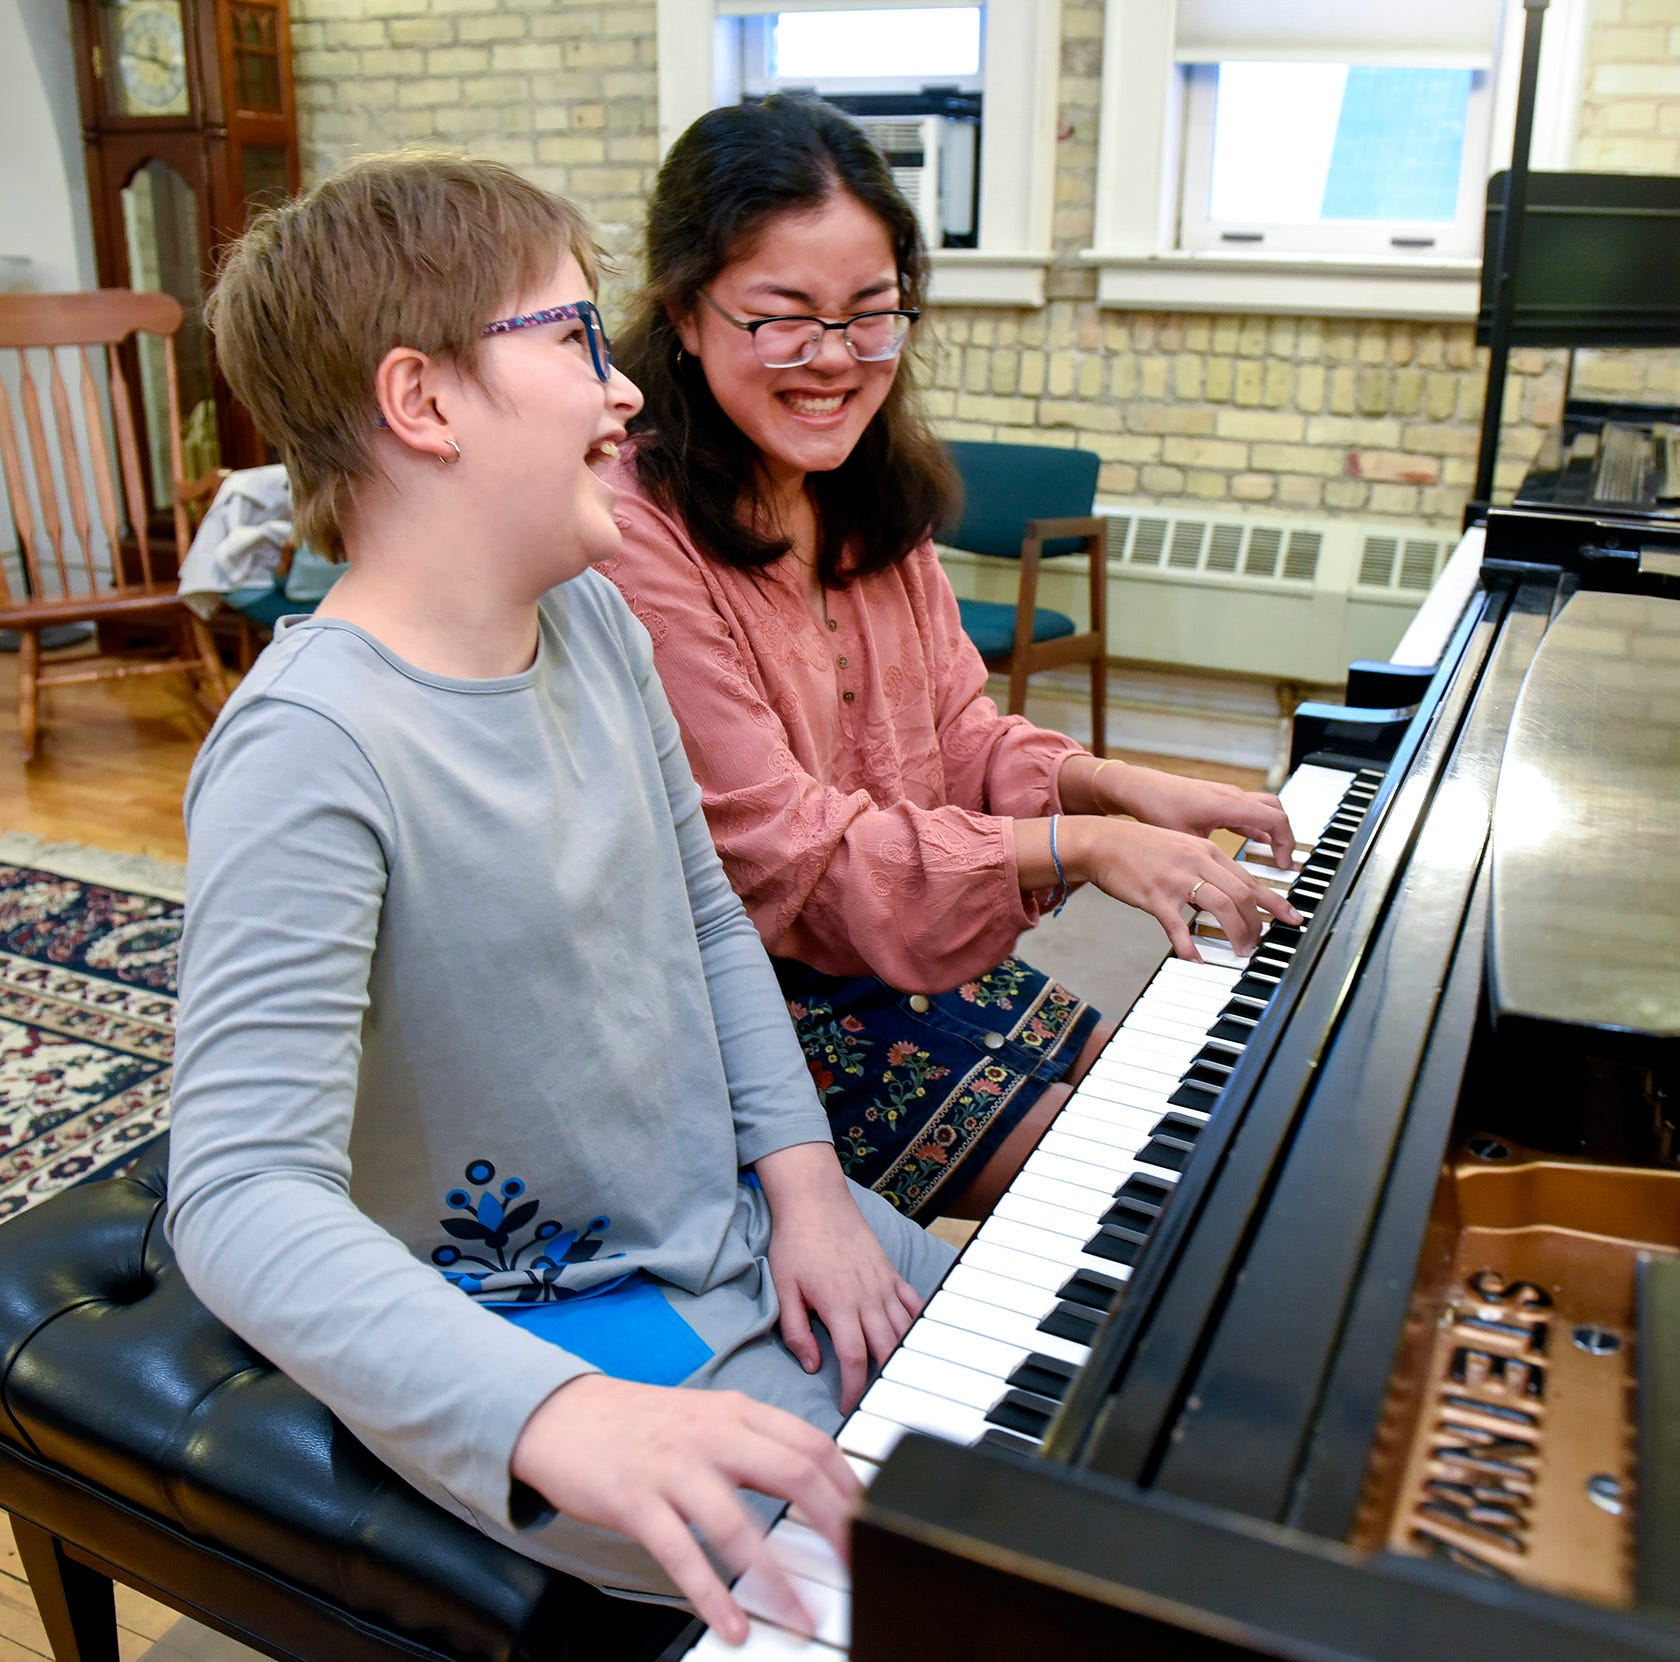 On the wings of paper cranes, 11-year-old pianist rebounds from brain hemorrhage